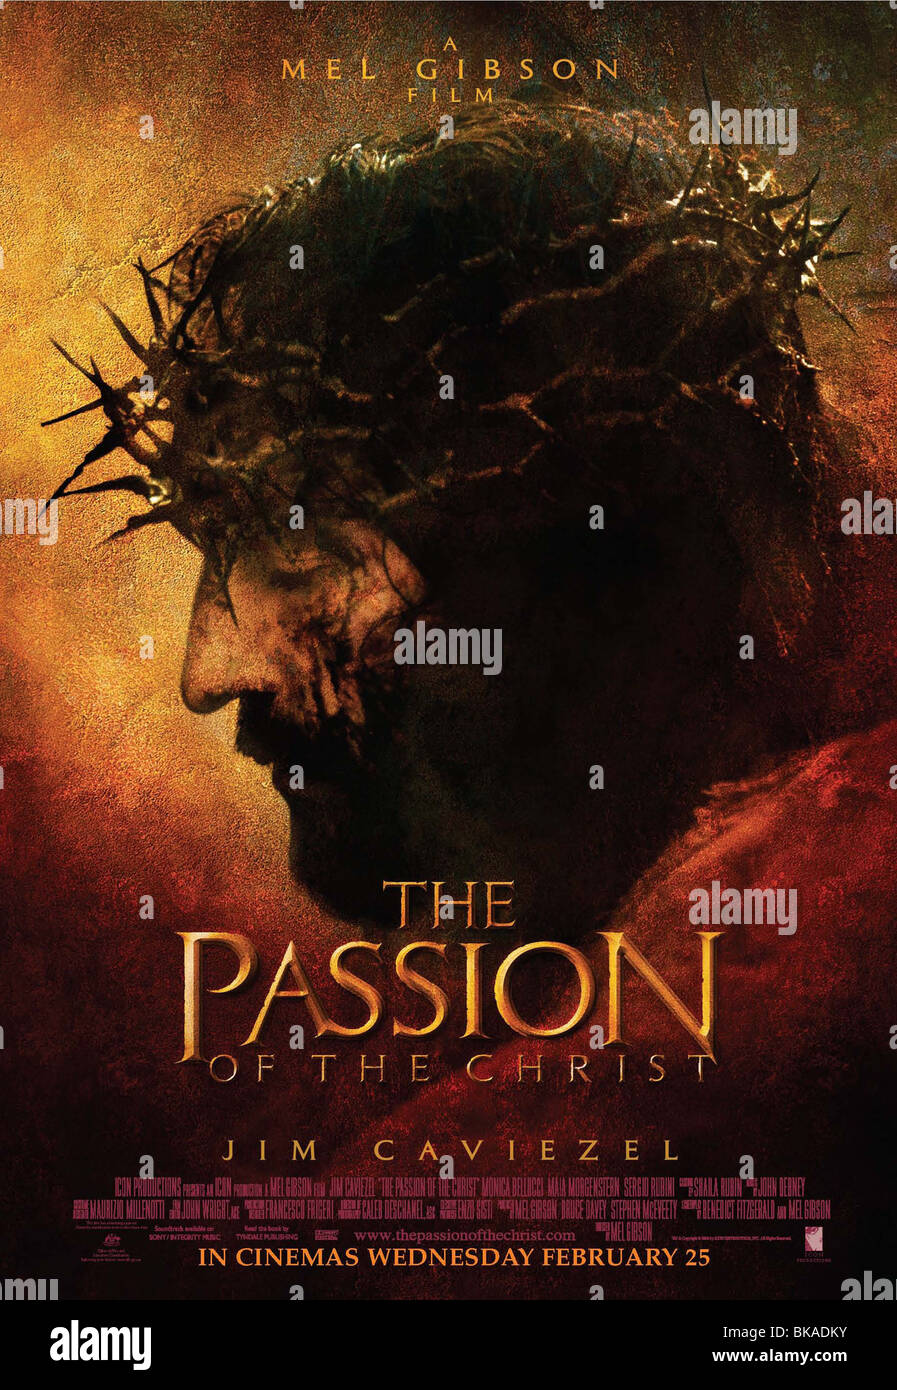 The Passion of the Christ  Year : 2004 - USA Director : Mel Gibson James Caviezel Movie poster (USA) - Stock Image